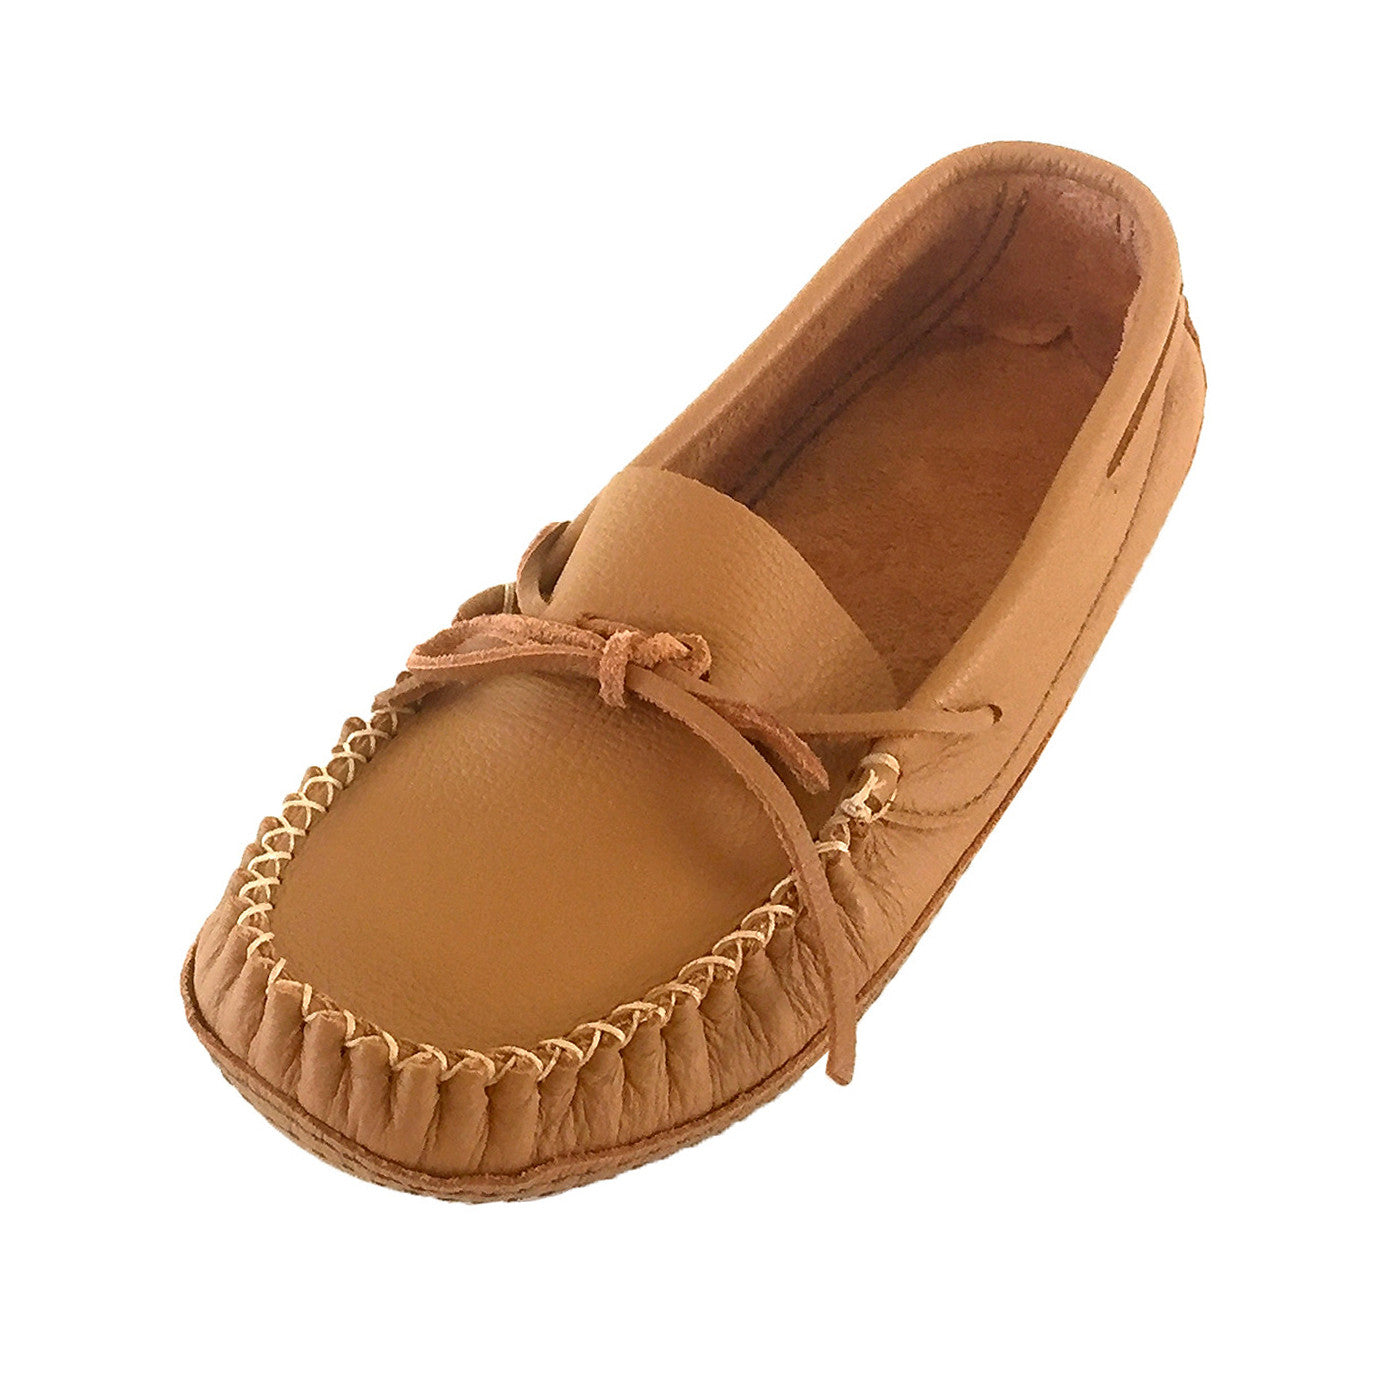 758ddac27d9 Men s Wide Soft Sole Genuine Cowhide Leather Indoor Moccasin ...